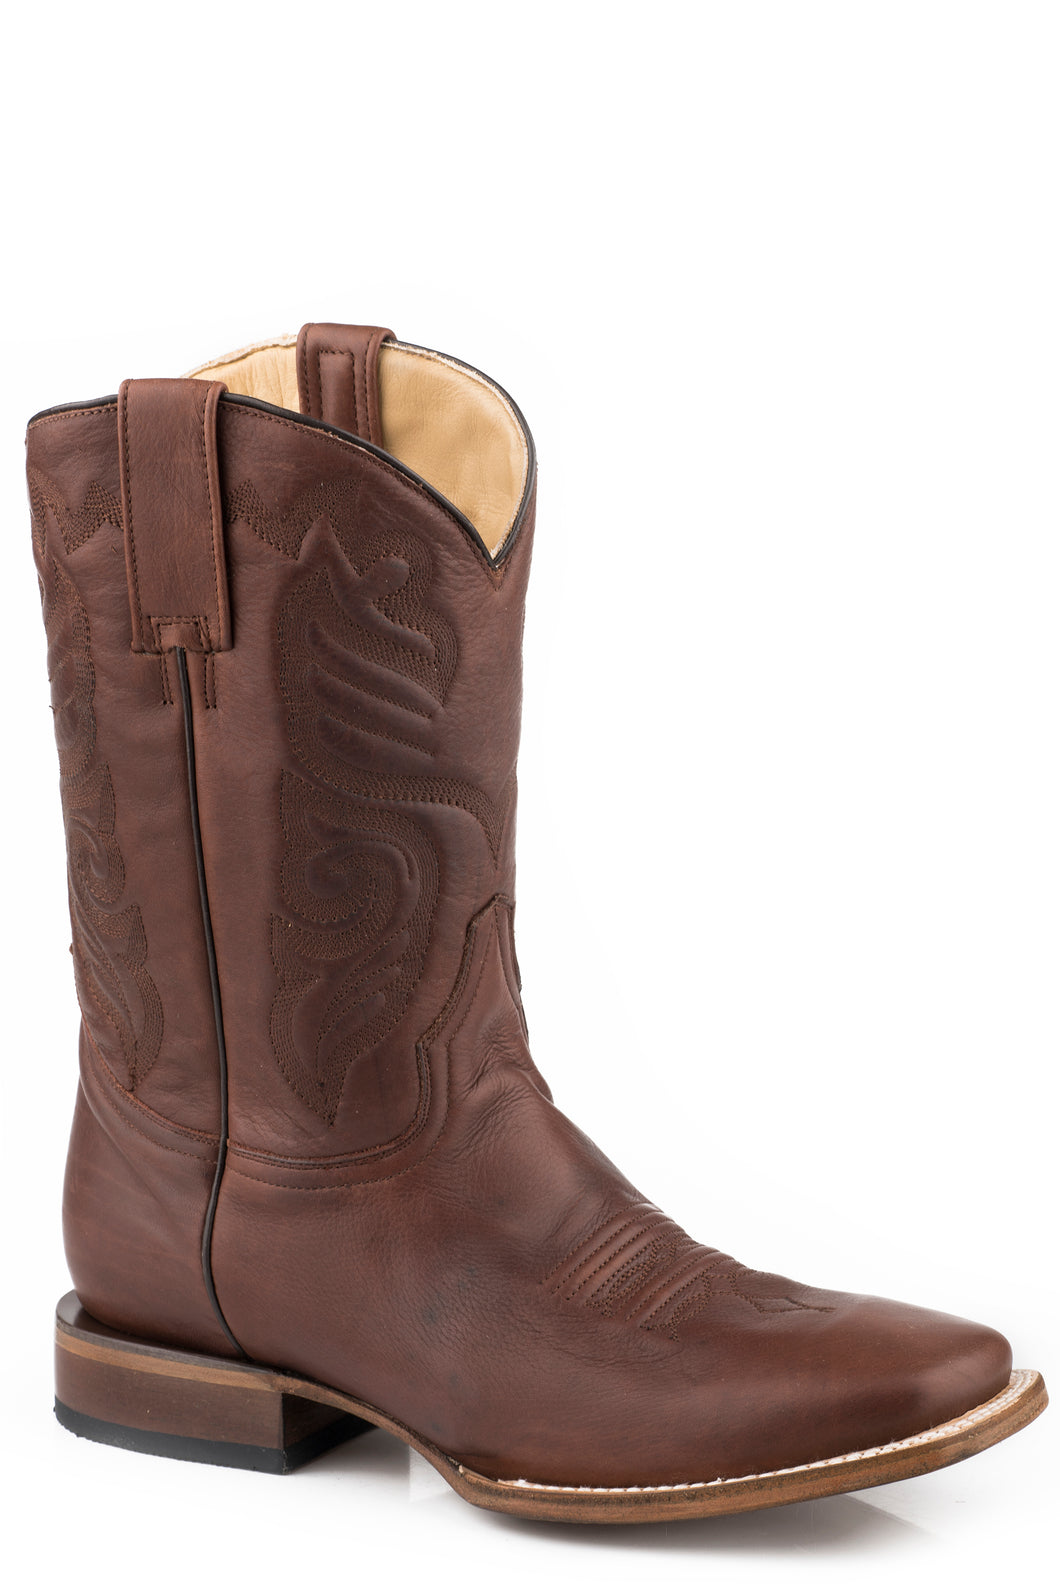 Mossman Boot Mens Boots Brush Off Cognac Vamp Shaft